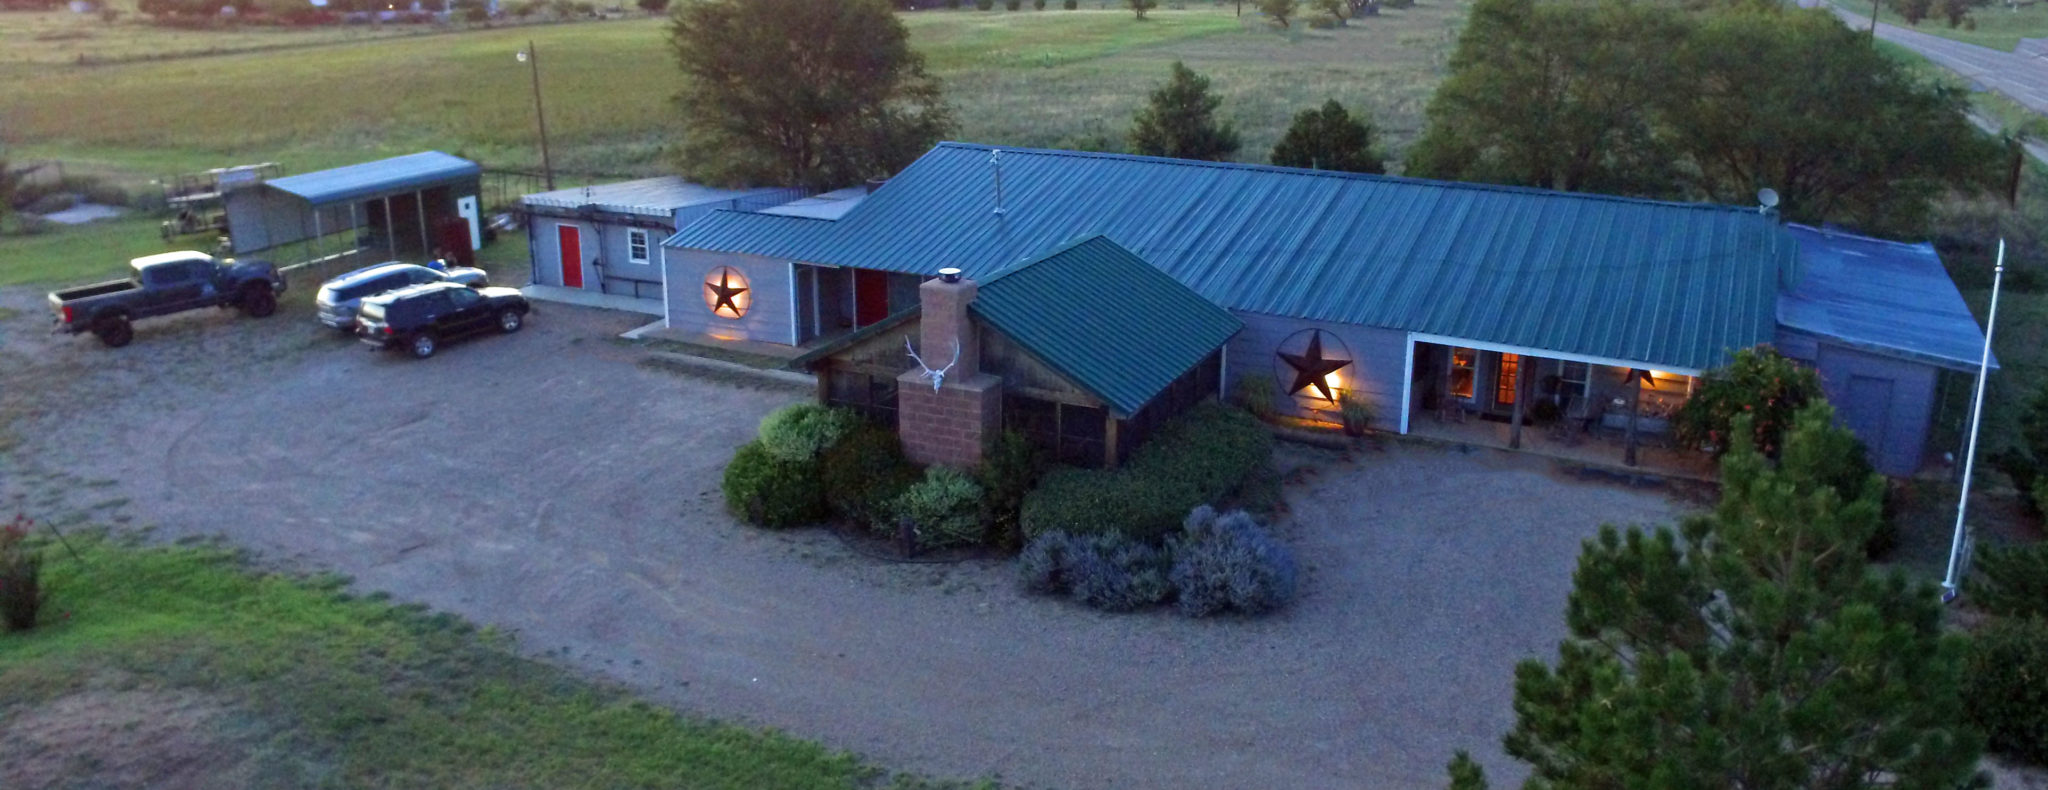 Hunting lodge at all american outfitter